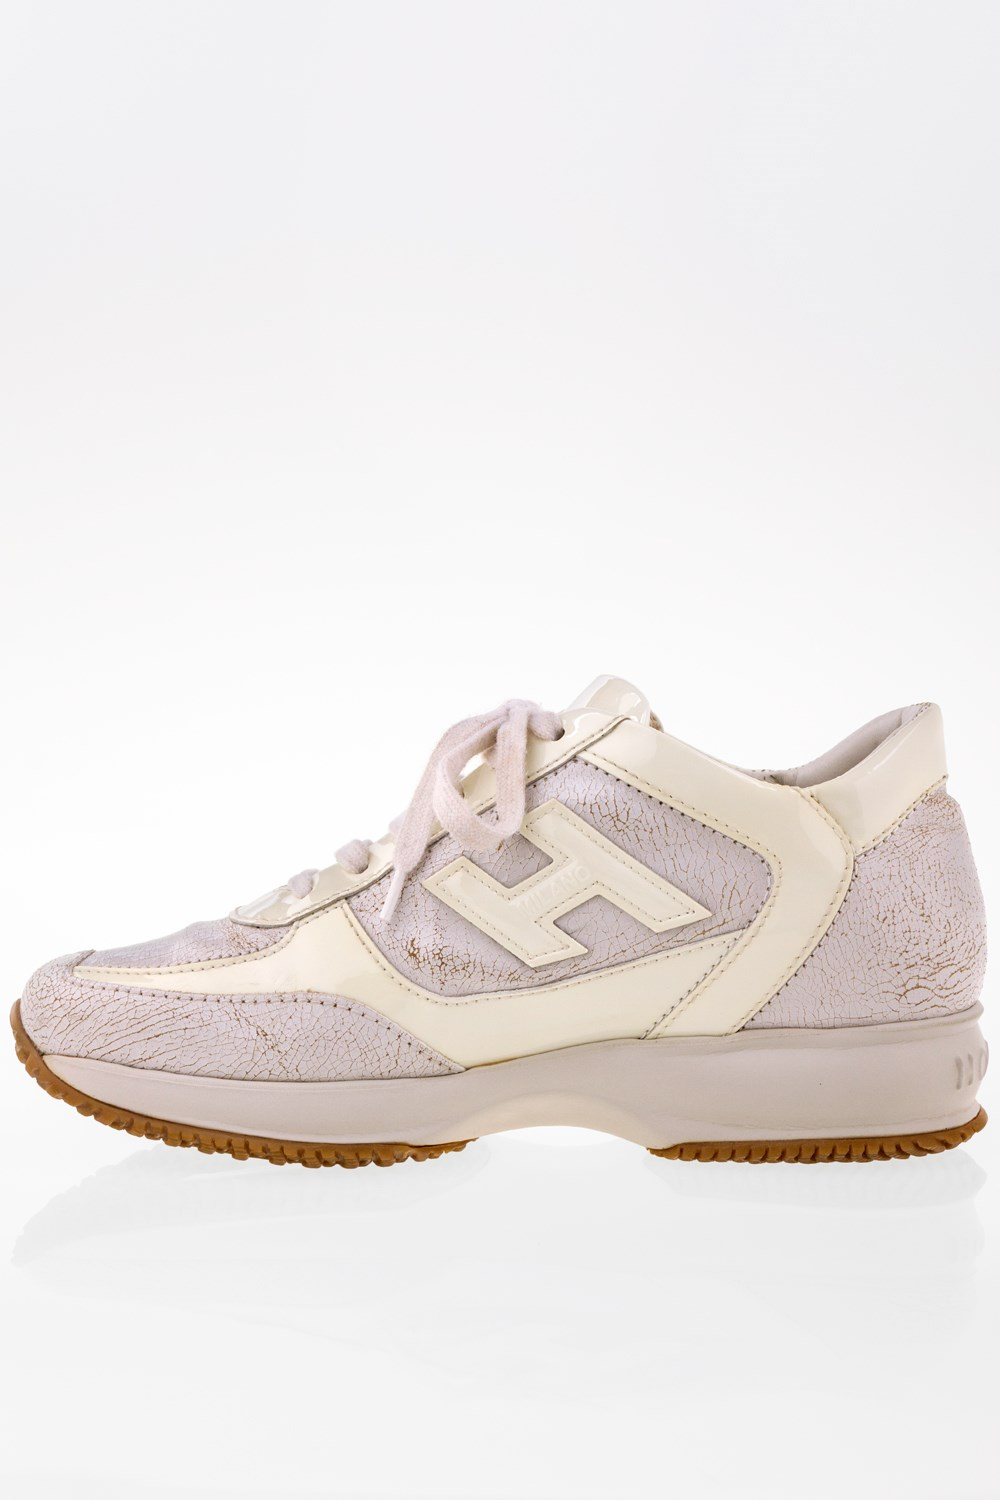 Interactive Sneakers with Cracked Leather and Ecru Patent Leather  Size  36  - Fit  37 06e58a0fe9d